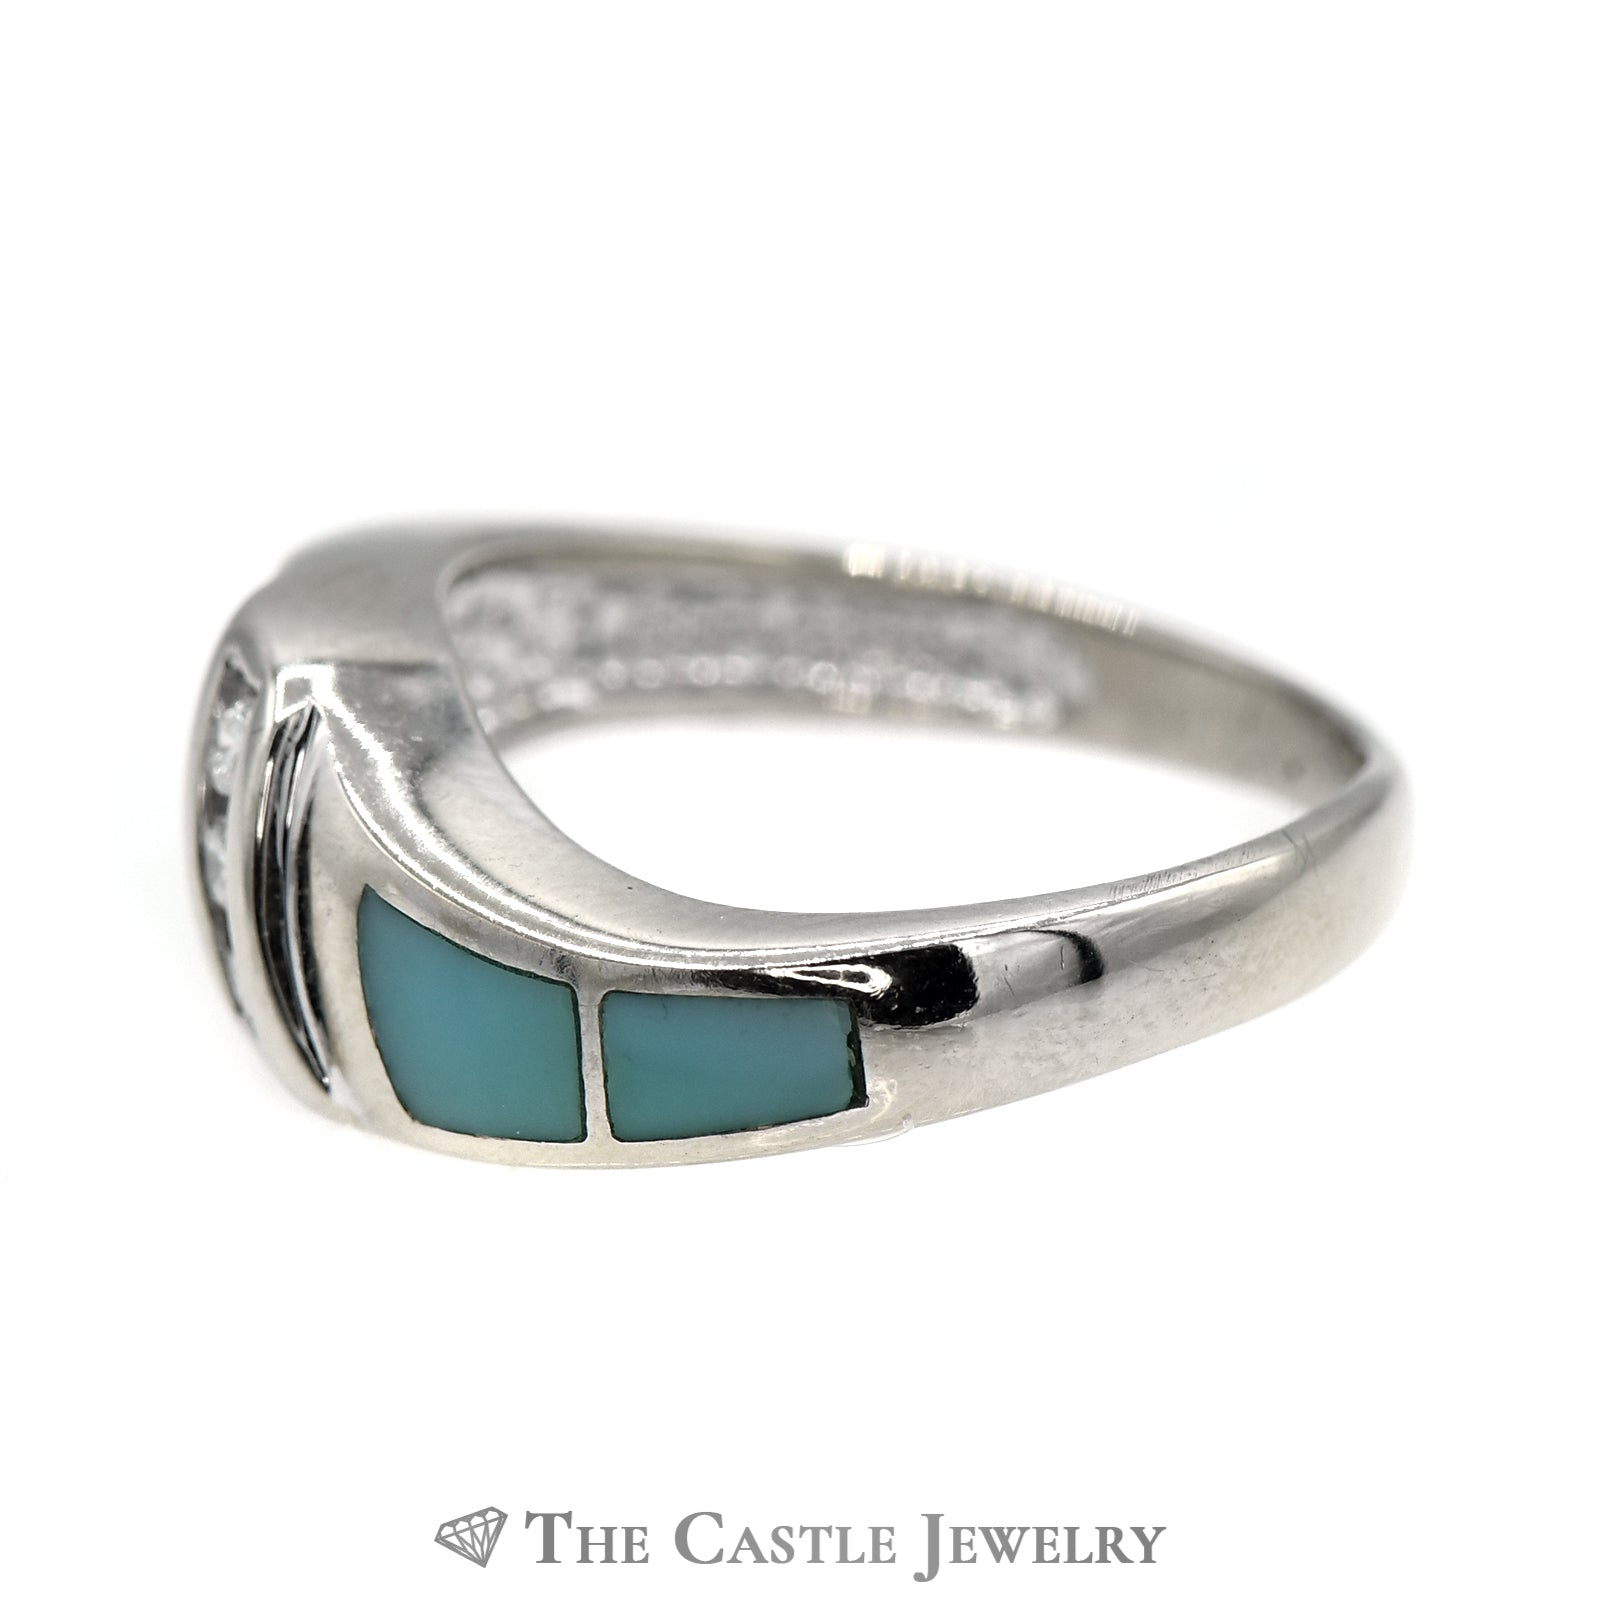 Triple Channel Set Diamond Band with Turquoise Inlay Accents in 14k White Gold-2